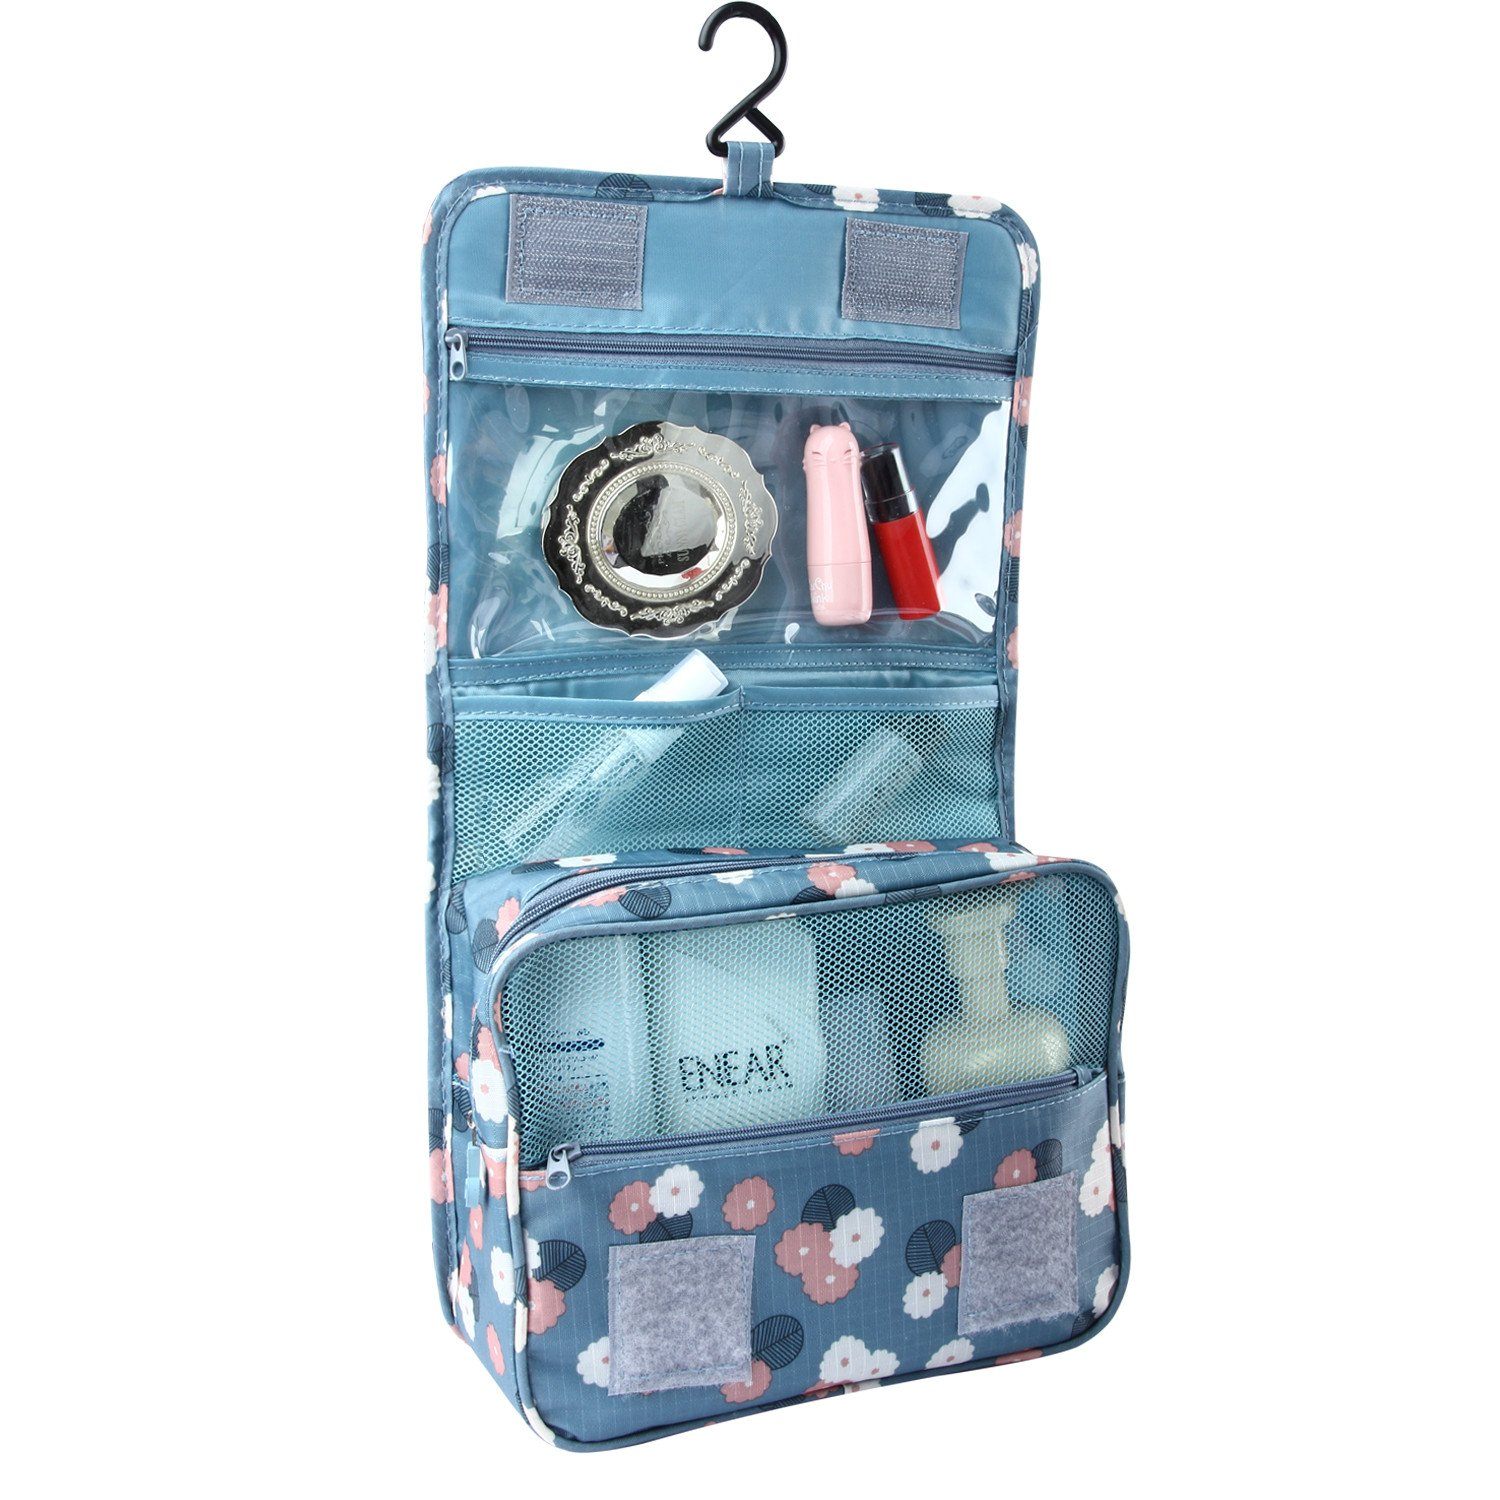 Discoball Portable Travel Folding Make up Toiletry Bags with Hook Organizer Bags Cosmetic Bags(Blue Flower) 57962